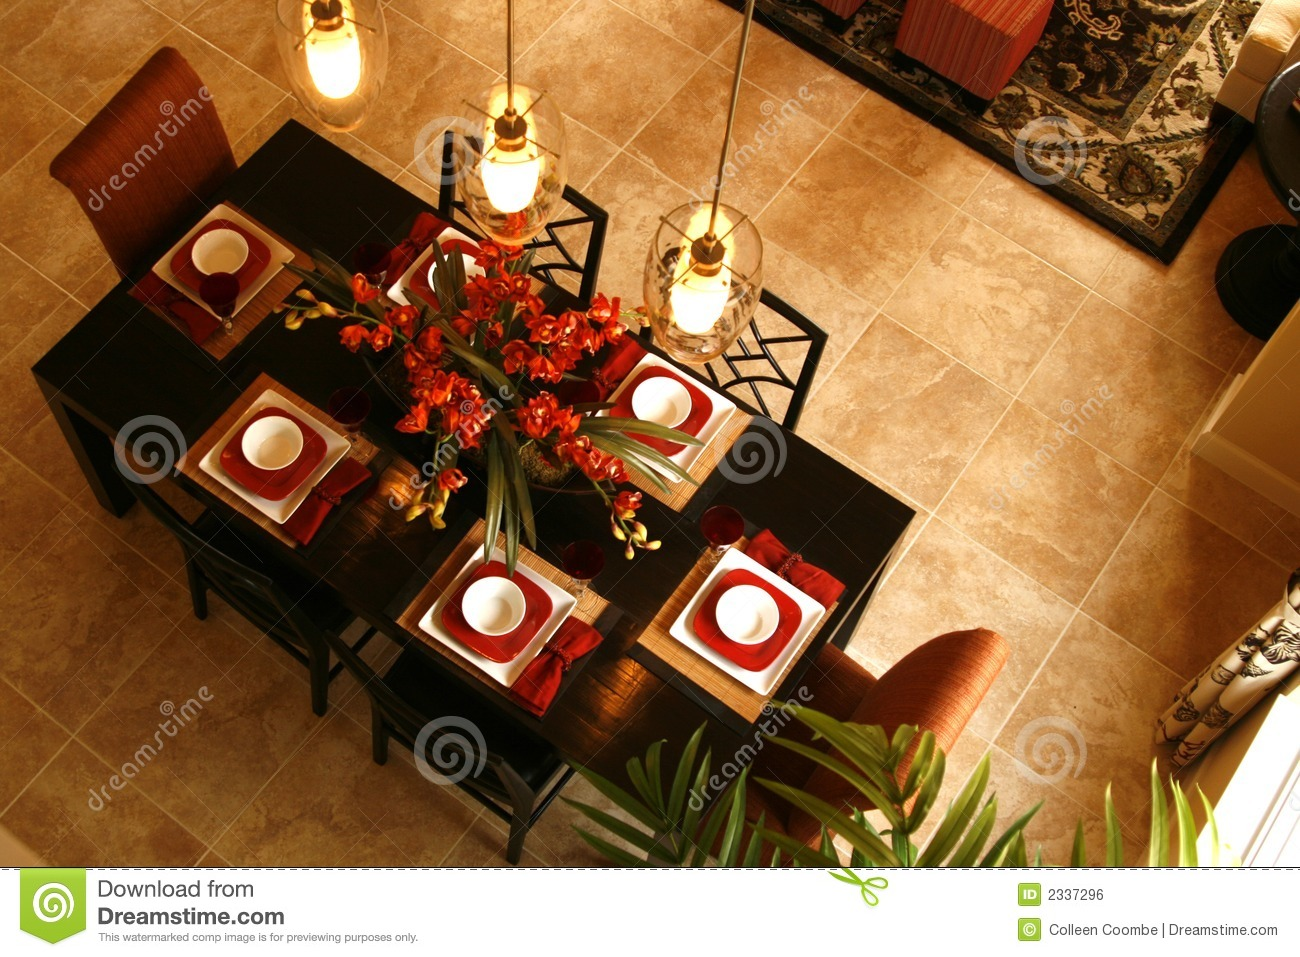 Bamboo Black Carpet Centerpiece Dining Flooring Floral Lights Overhead  Placemats Red Room ...